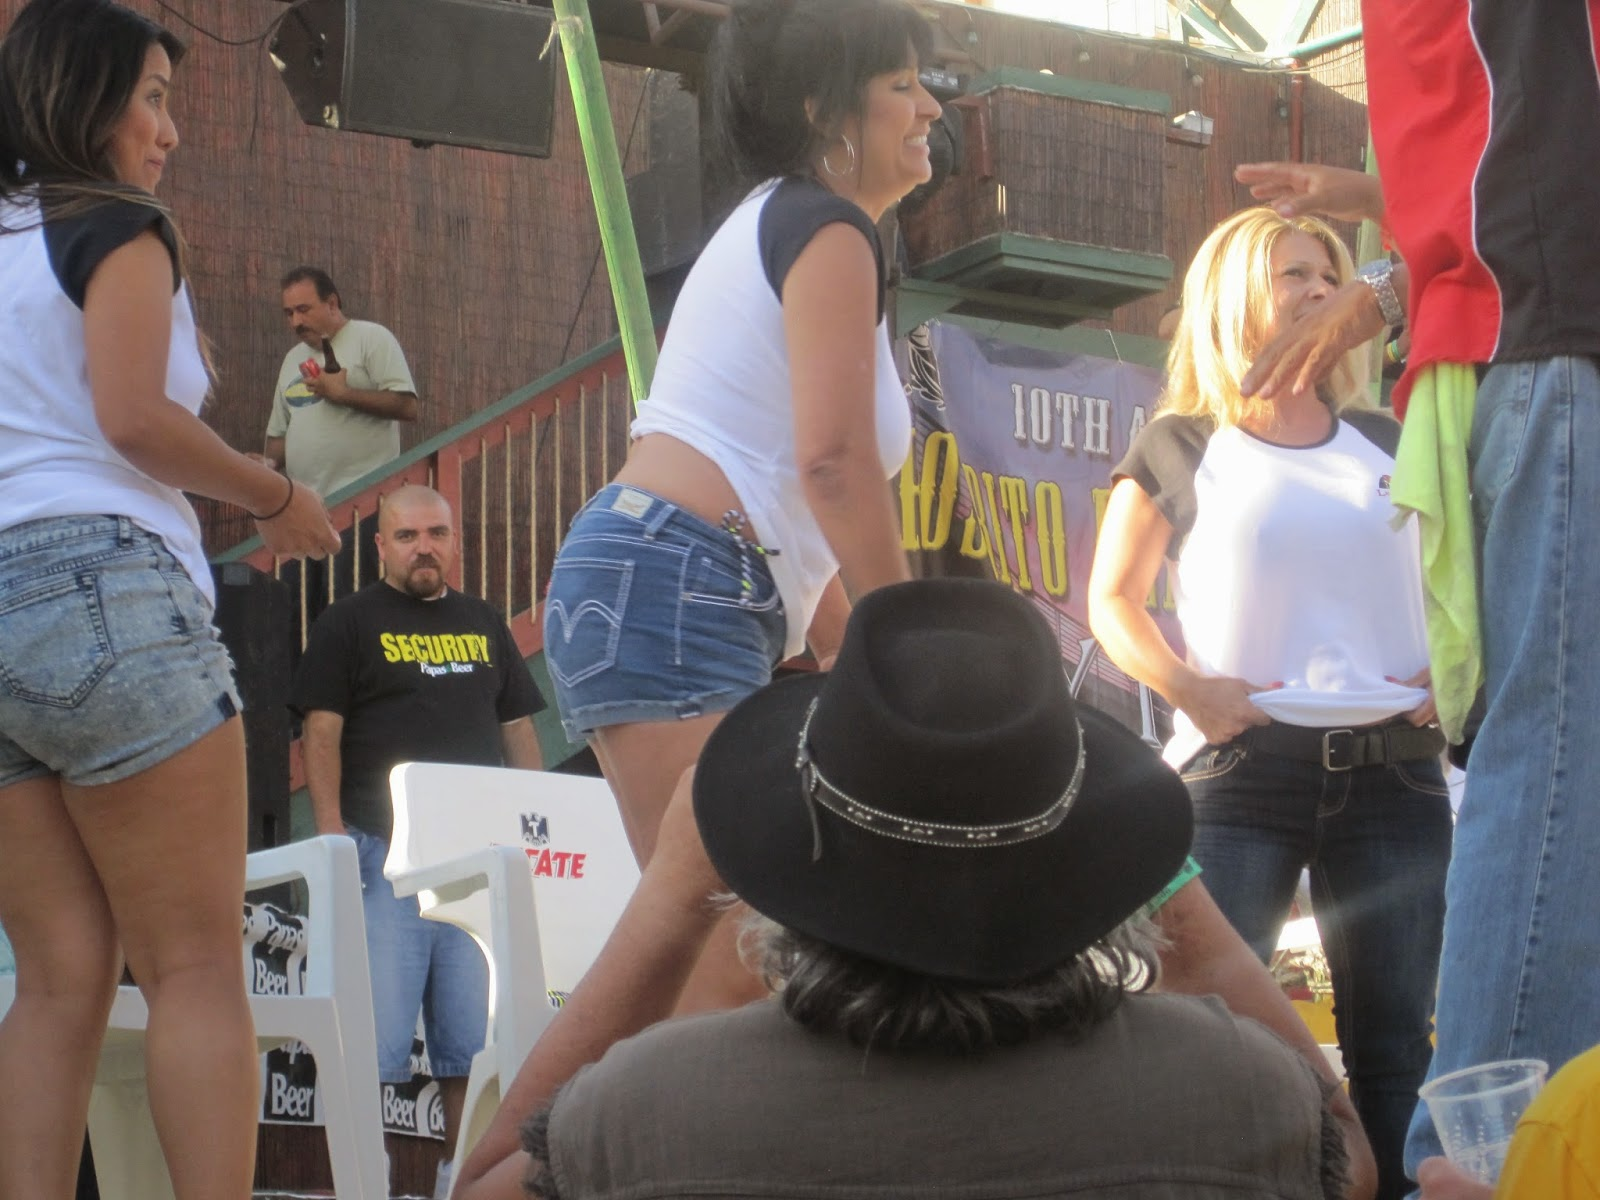 Wet tshirt competition 28 part 2 - 3 3